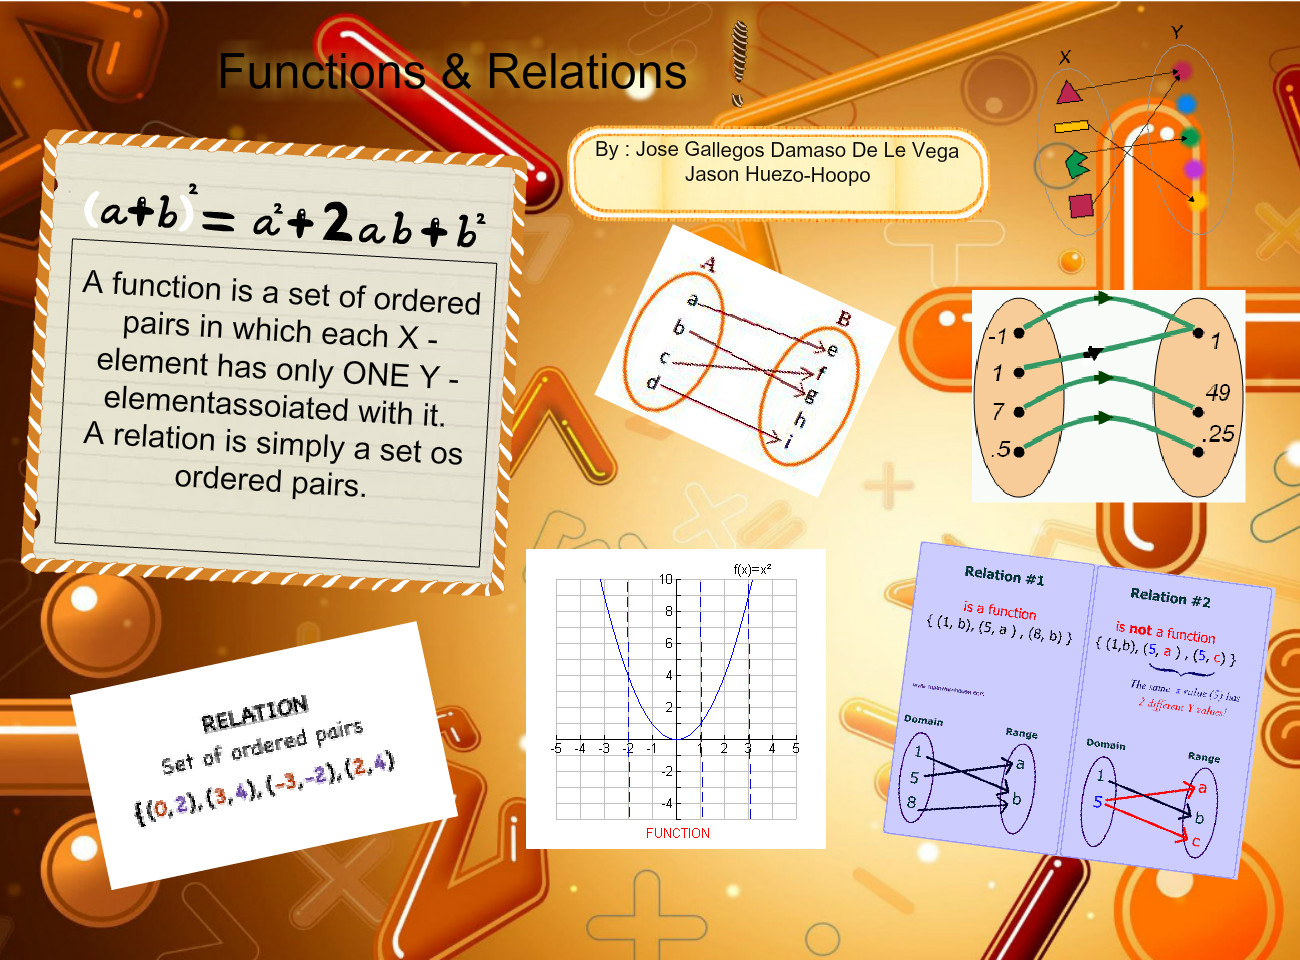 Functions & Relations